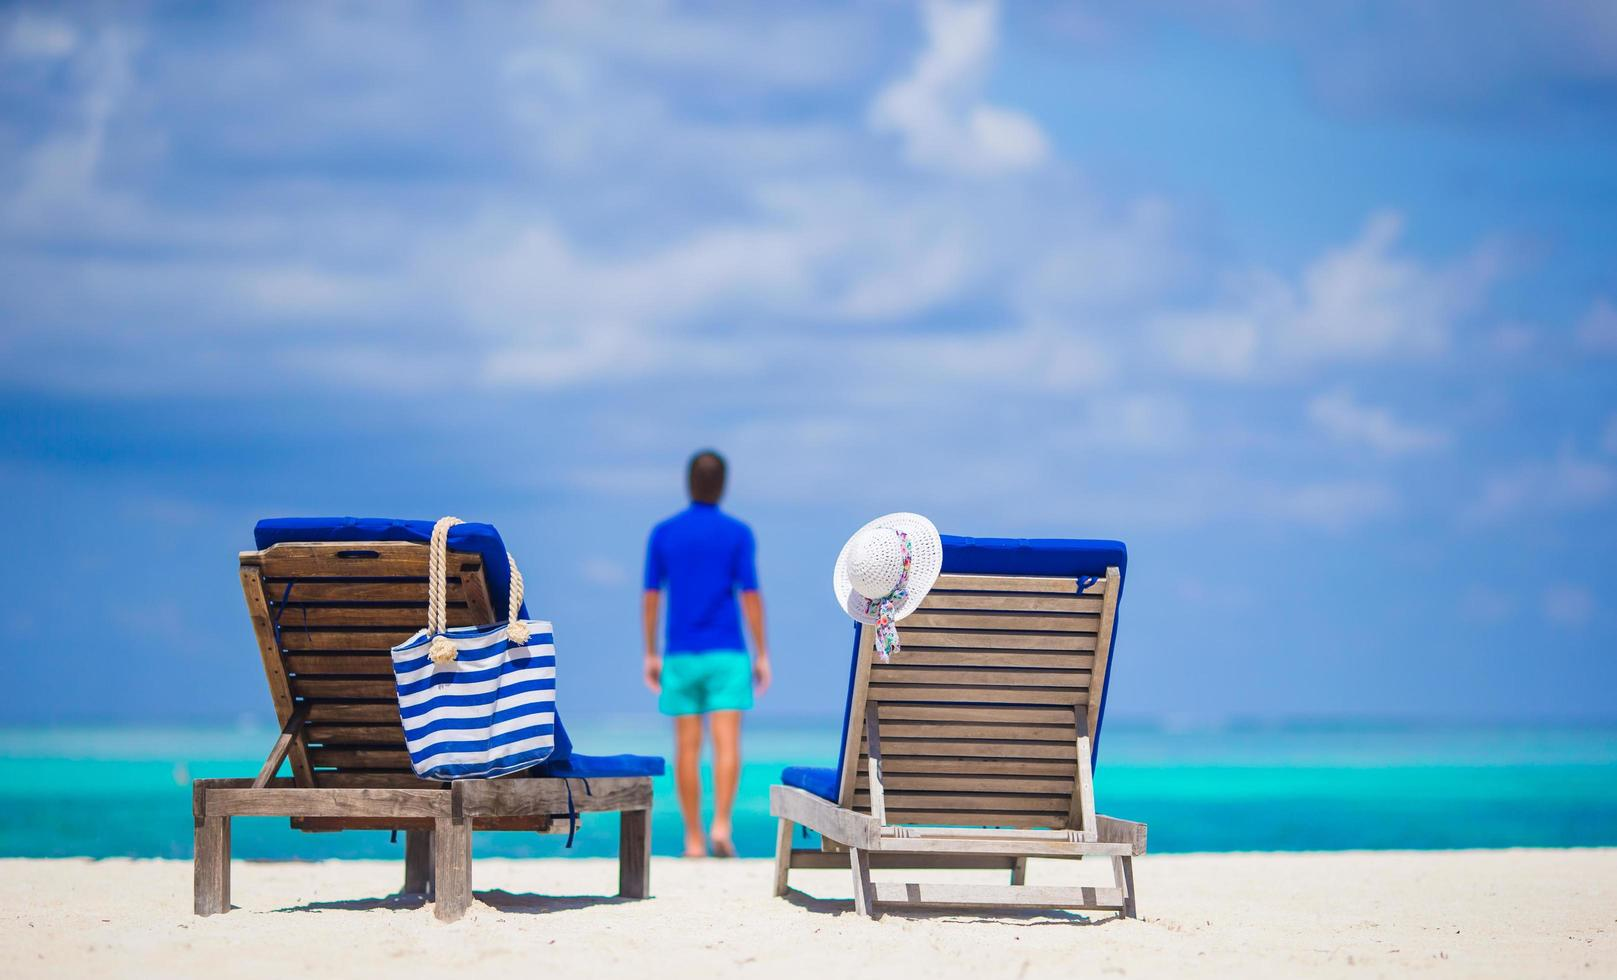 Lounge chairs on a beach with a person in the distance photo